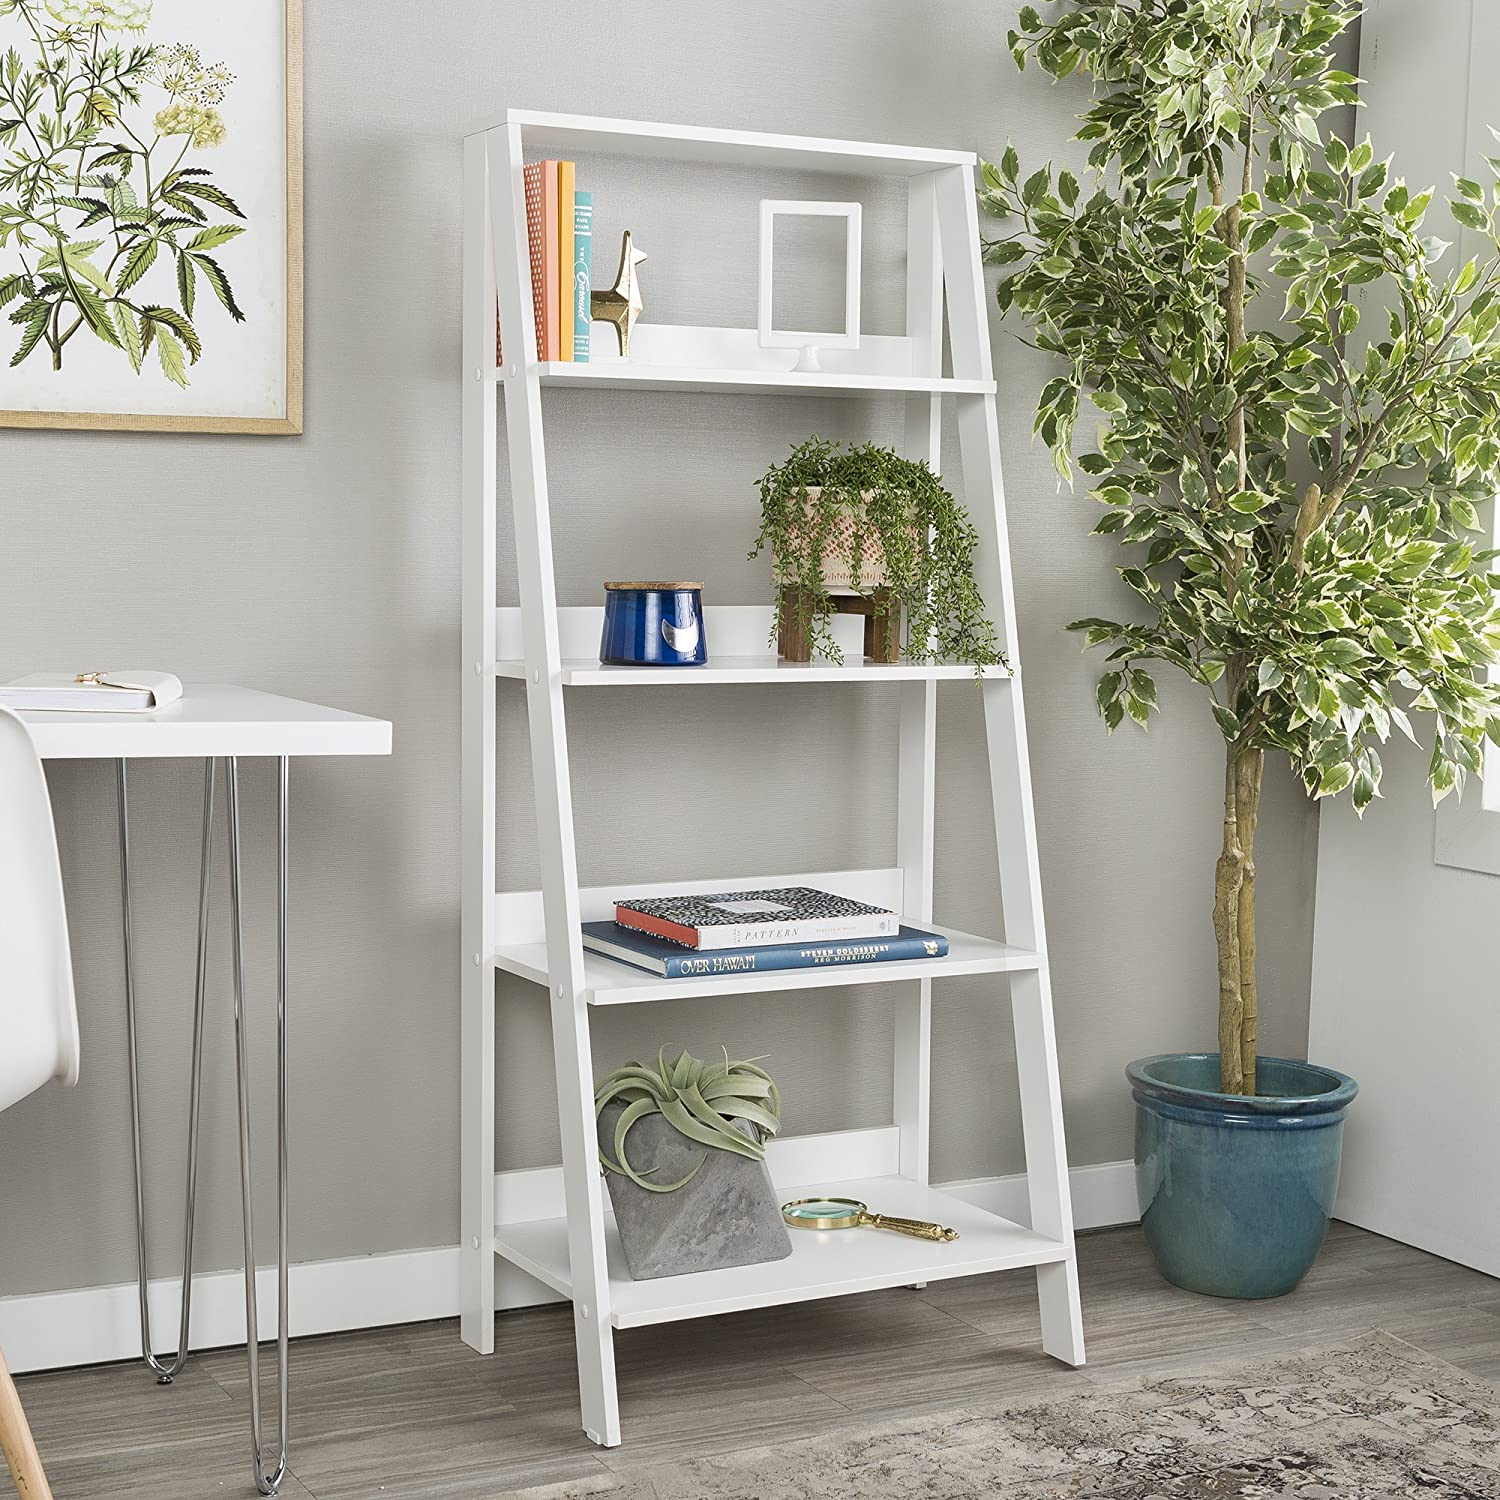 "WE Furniture 55"" Wood Ladder Bookshelf - White"